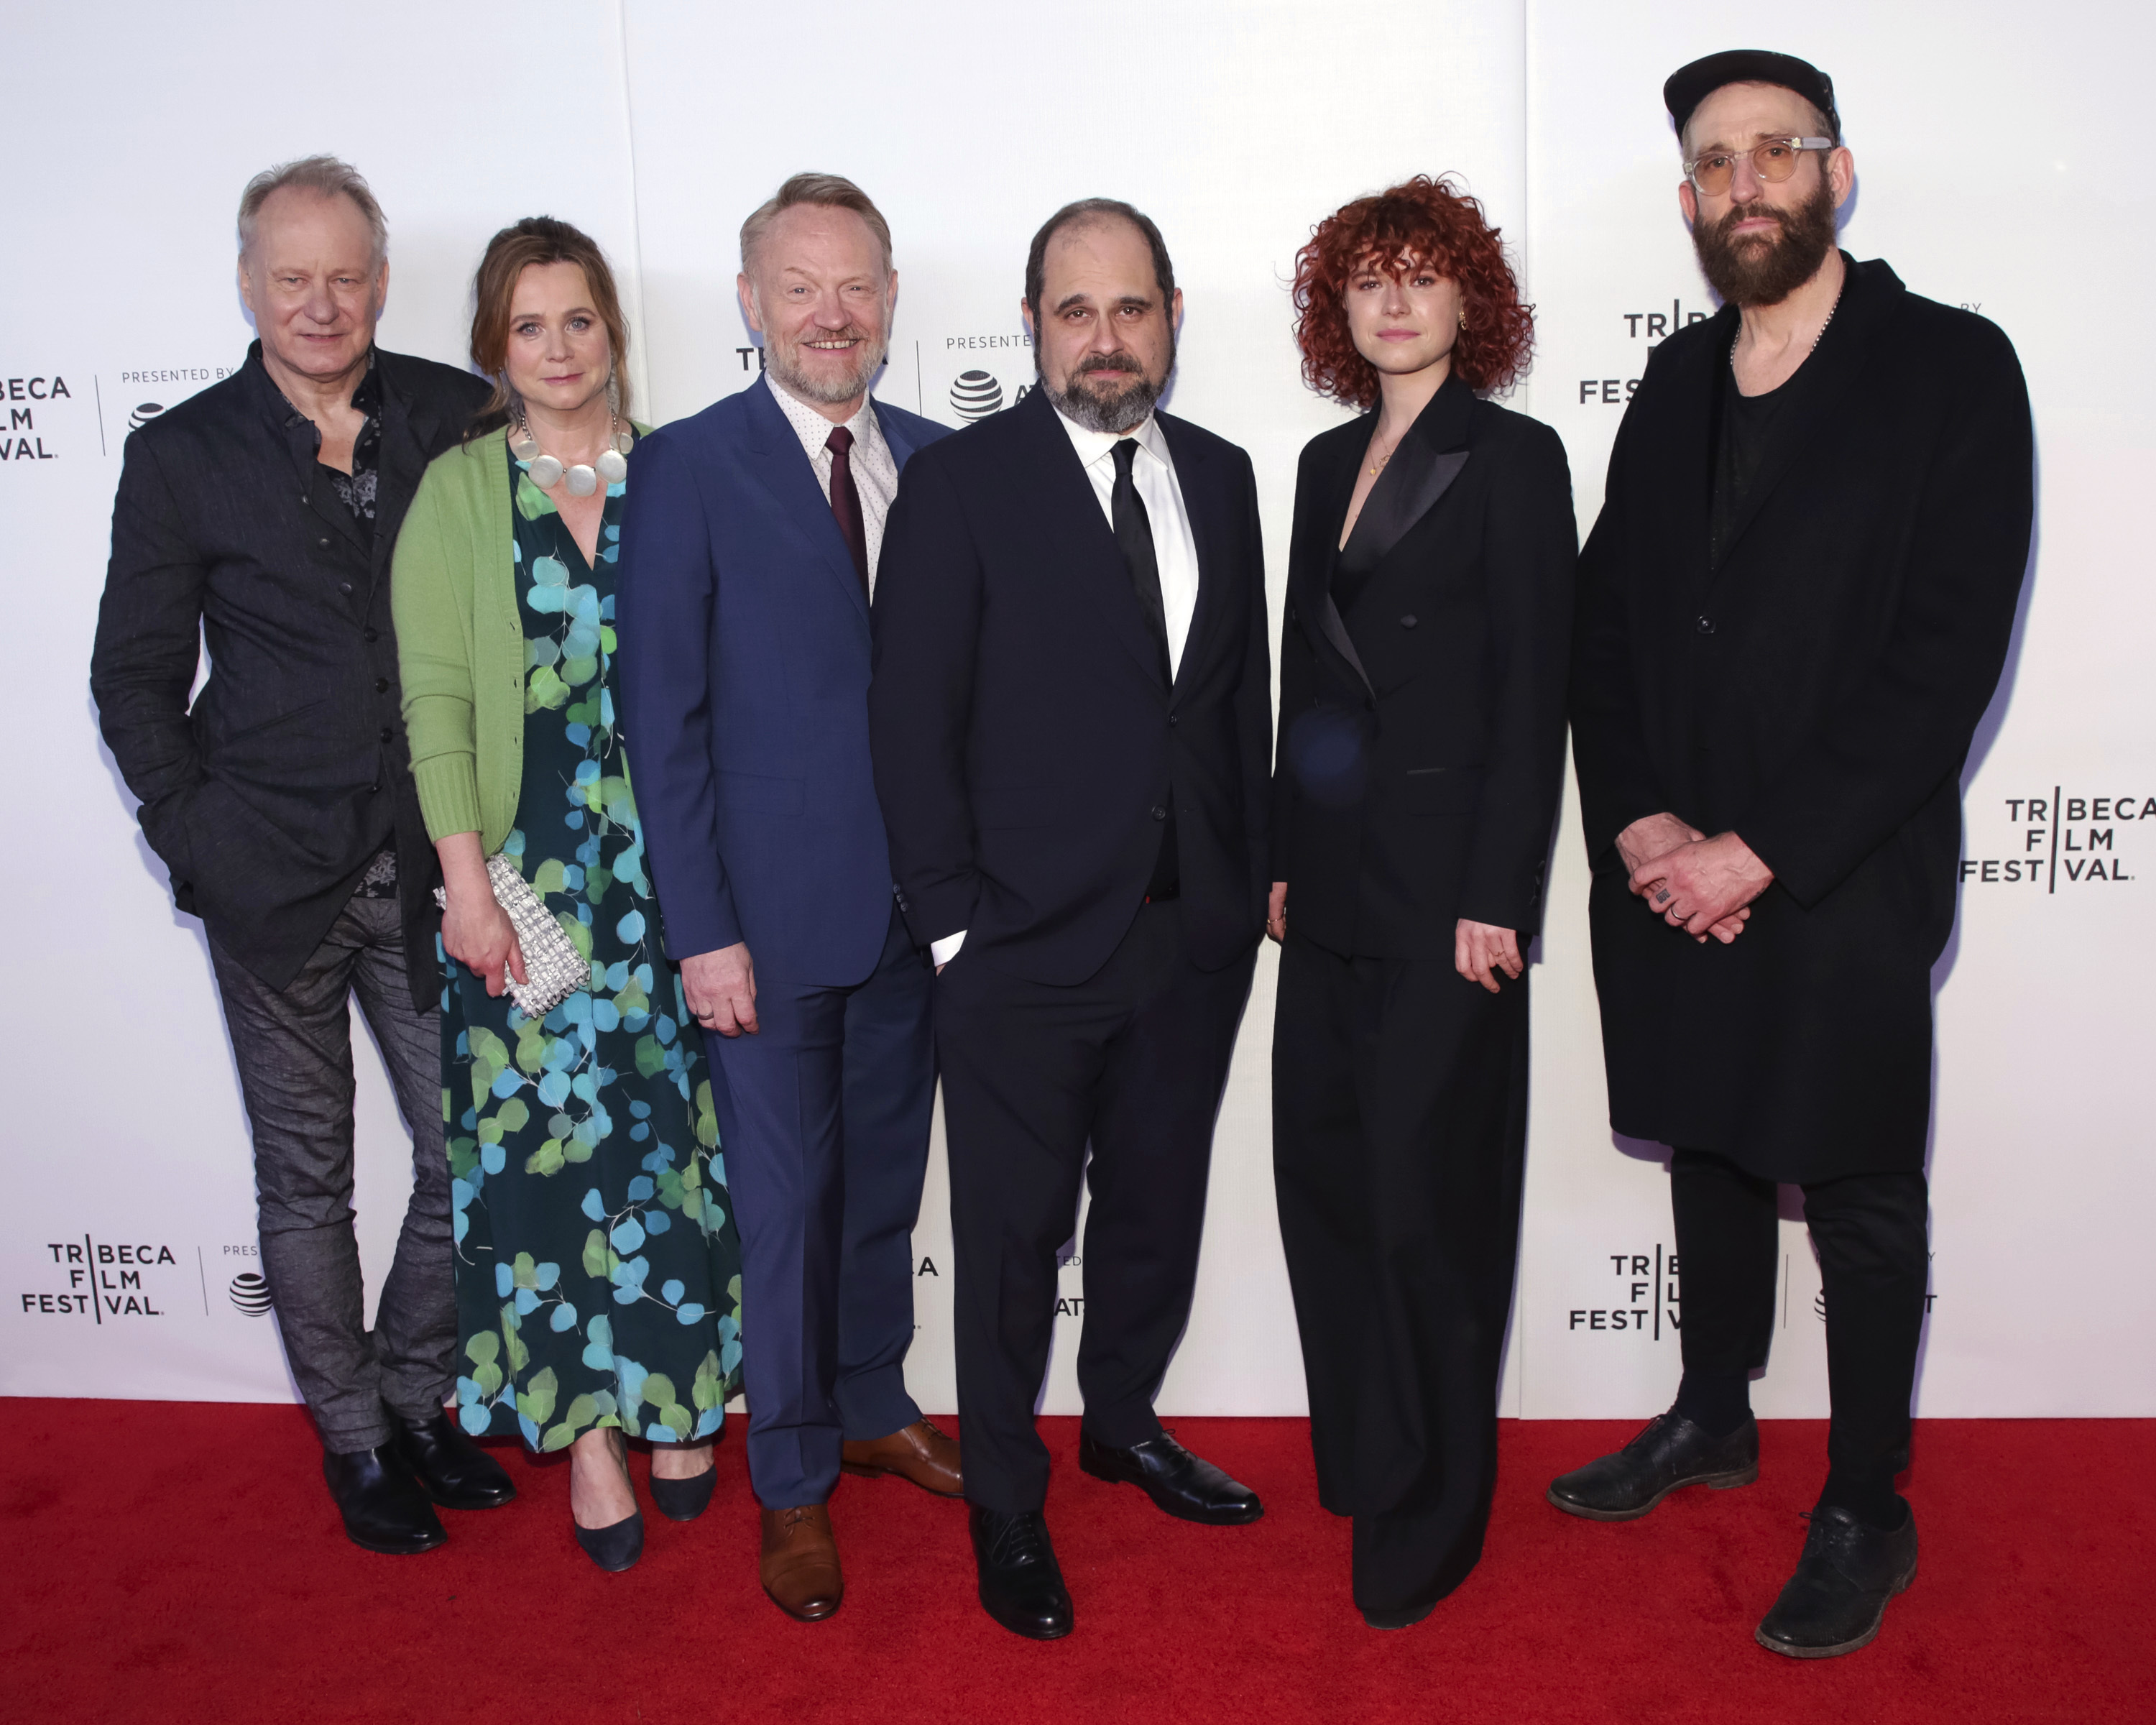 "Actors Stellan Skarsgard, from left, Emily Watson, Jared Harris, creator/writer Craig Mazin, actress Jessie Buckley and director/executive producer Johan Renck attend the screening for ""Tribeca TV : Chernobyl"" during the 2019 Tribeca Film Festival at Spring Studios on Friday, April 26, 2019, in New York. (Photo by Brent N. Clarke/Invision/AP)"